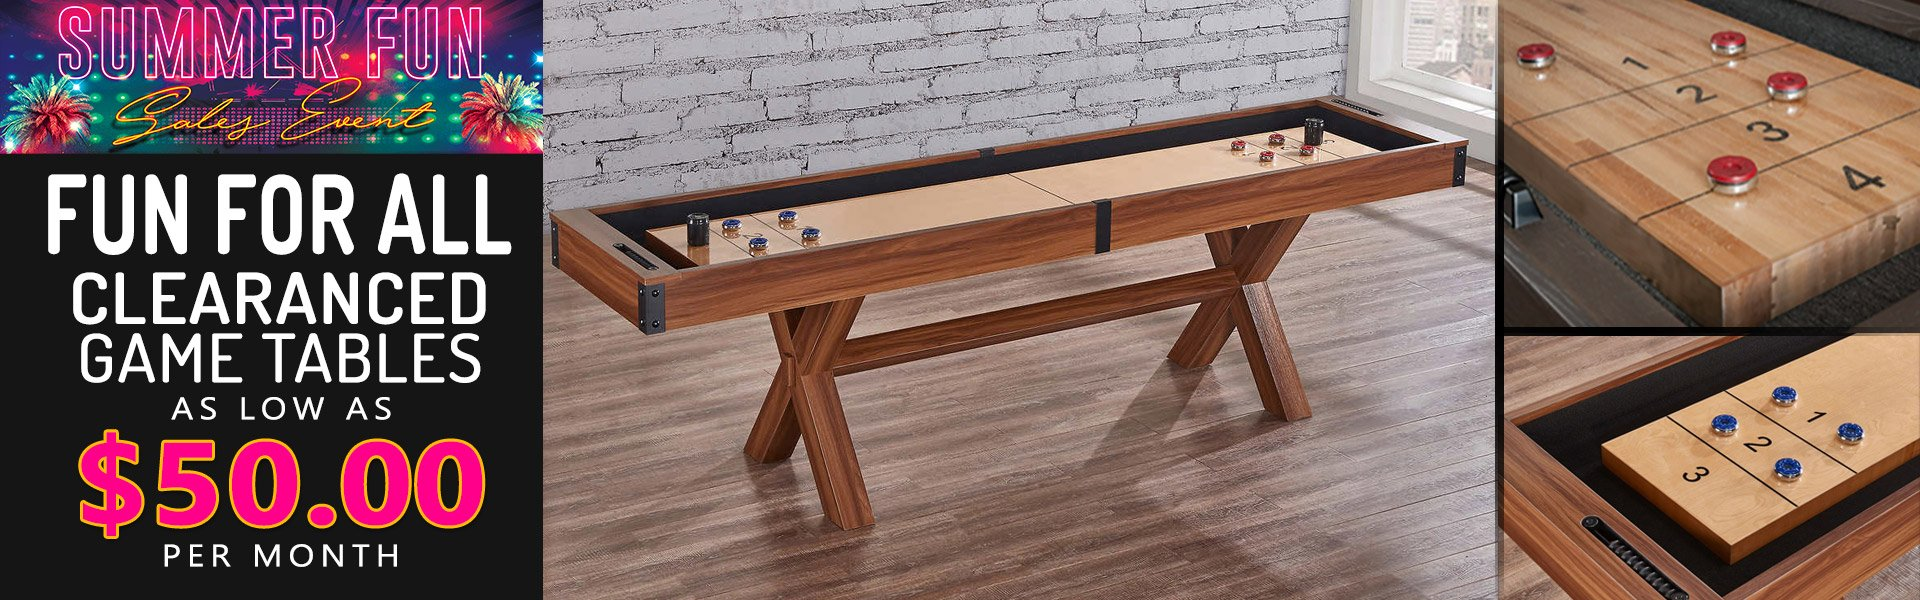 SUMMER-SALE-2021-game-tables